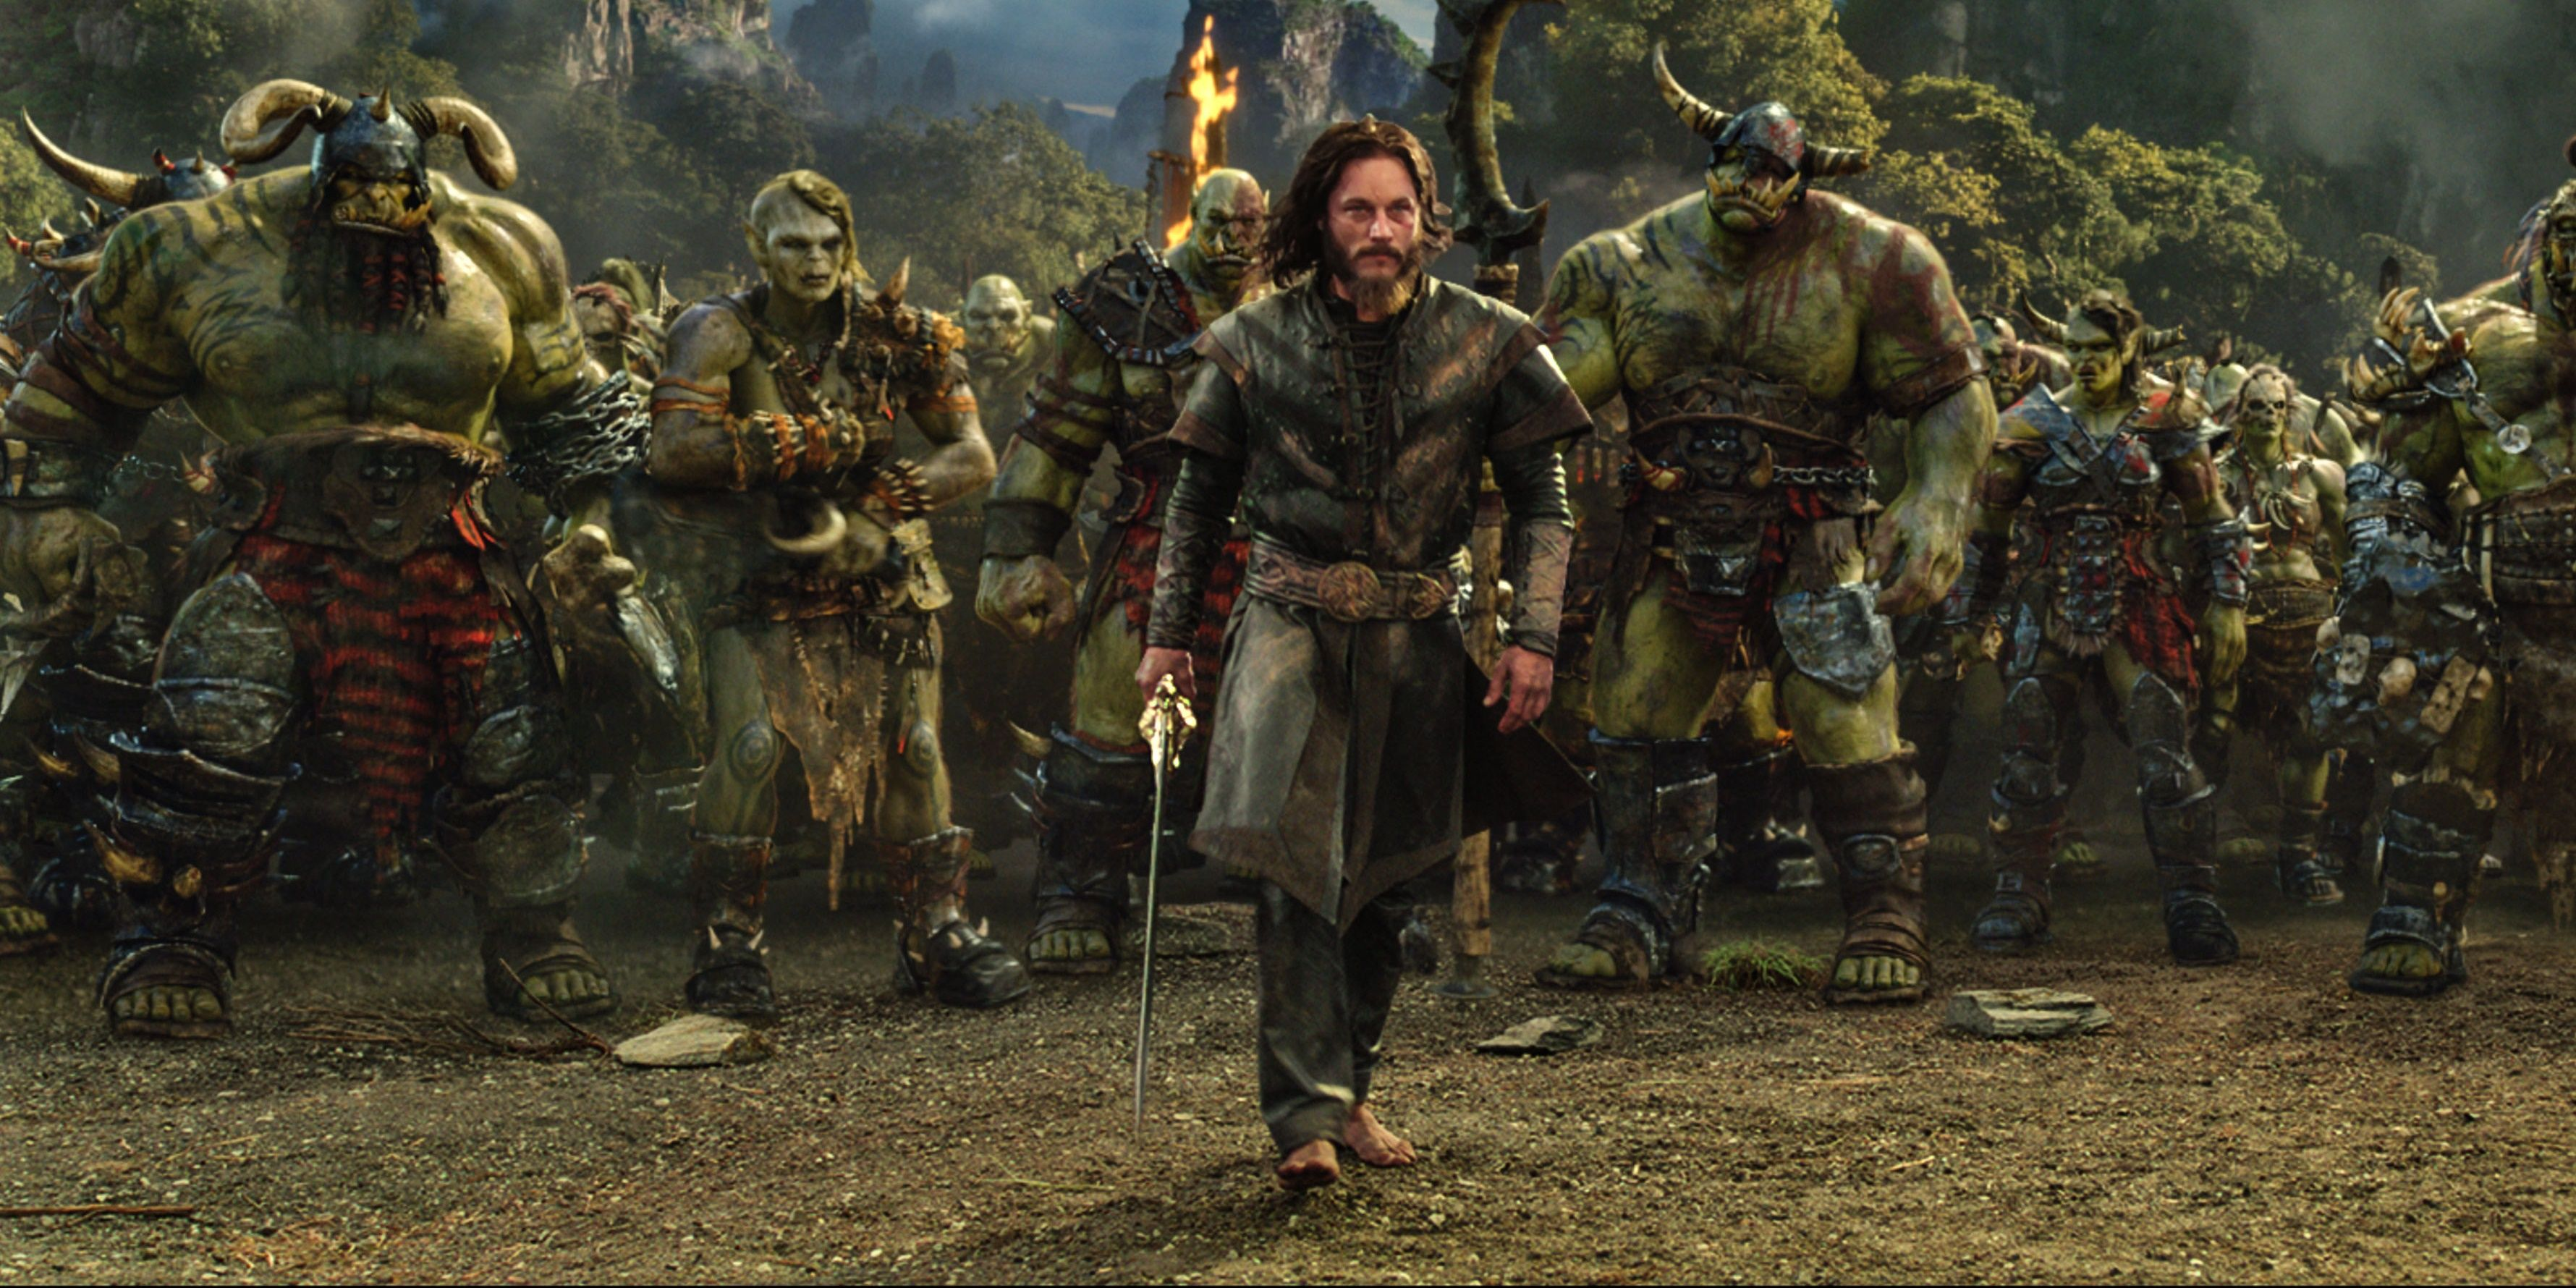 Warcraft Director Has Conflicting Feelings Towards Movie Warcraft Movie Anduin and Orcs